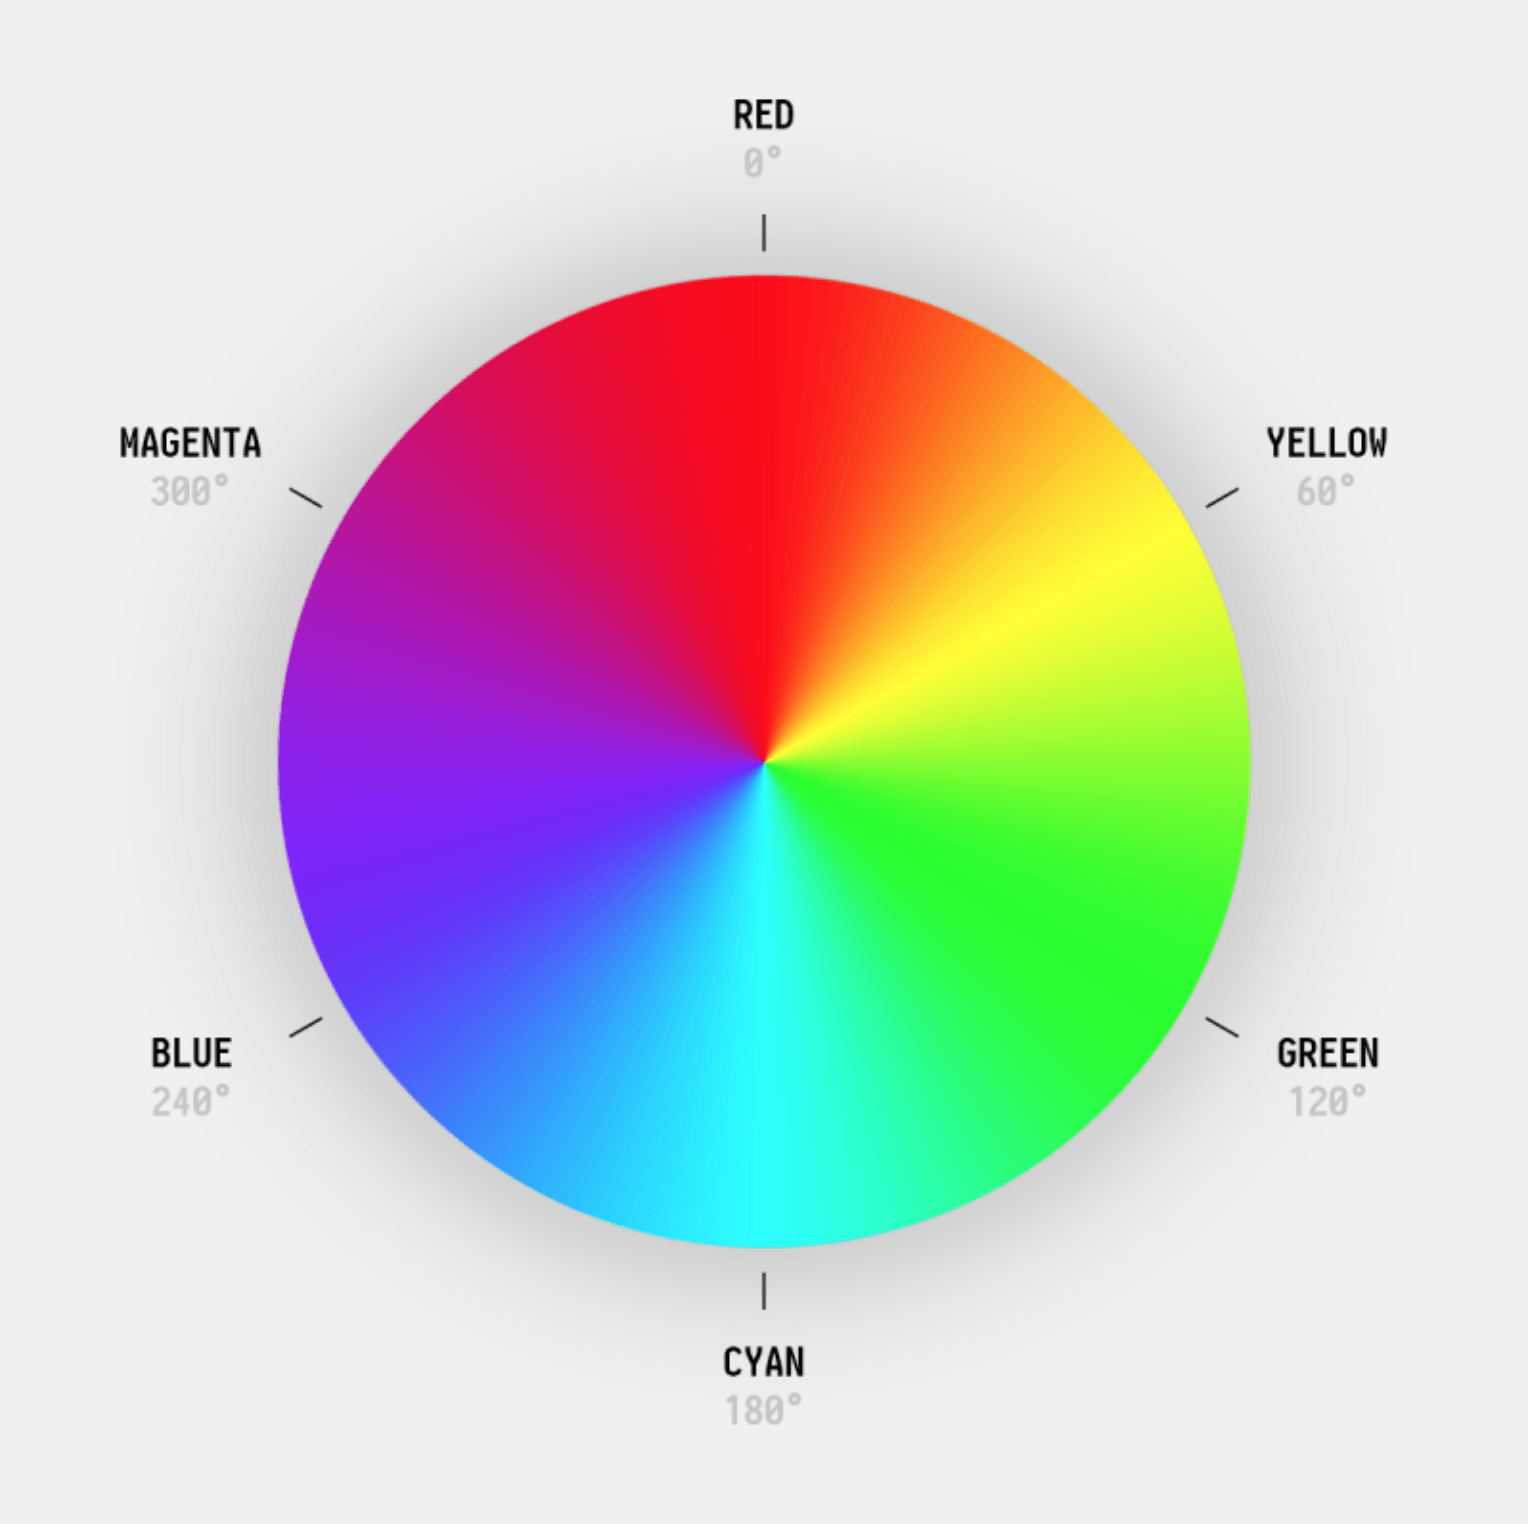 An image of HSL color wheel